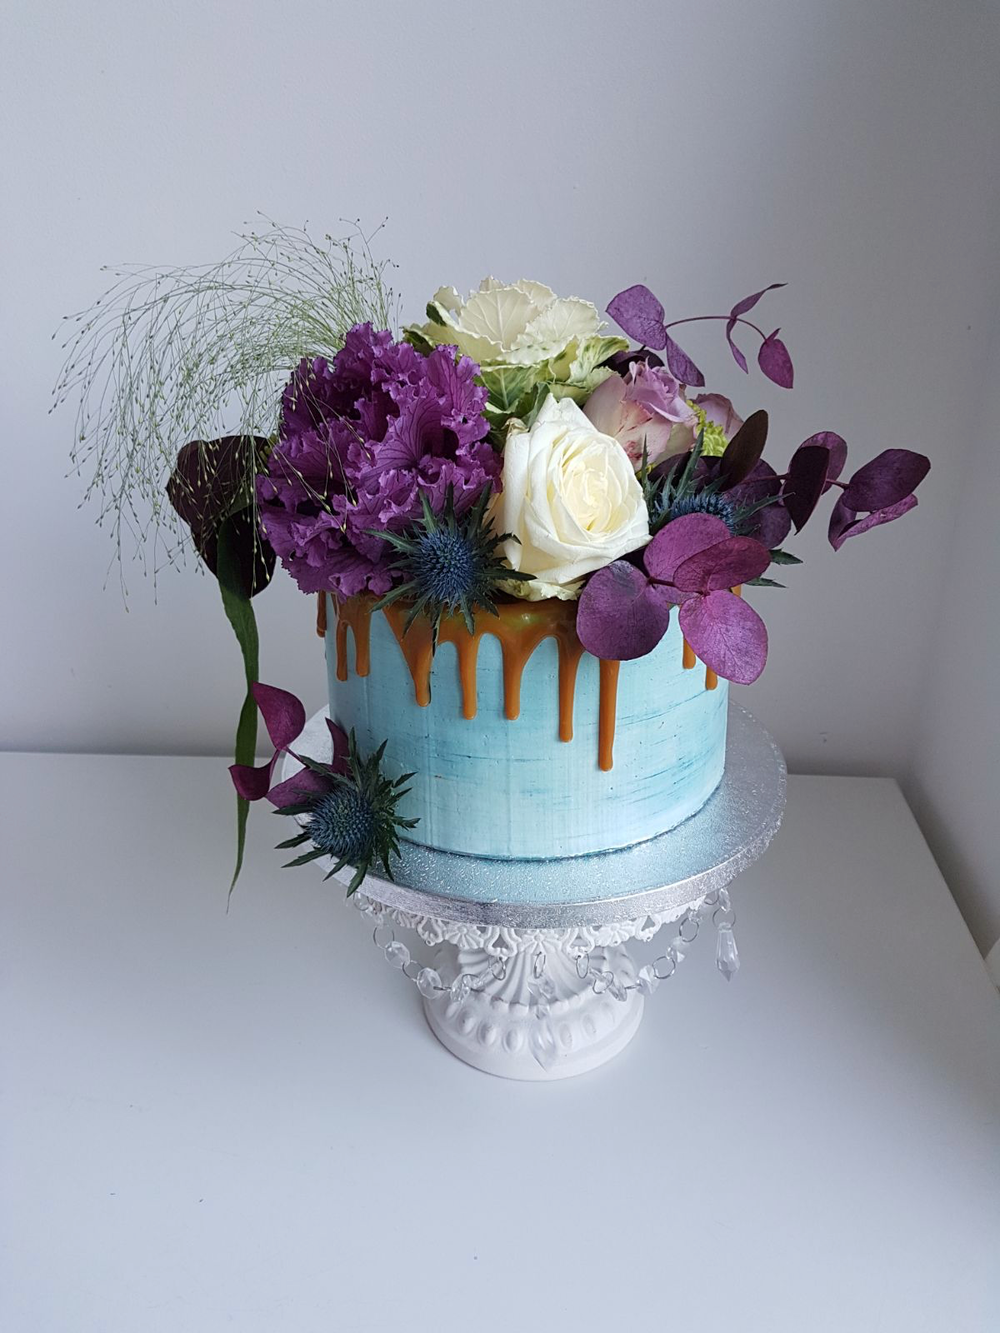 REBECCA SEVIOUR DOTTY ROSE CAKERY BIRTHDAY CAKE BLUE FLORALS